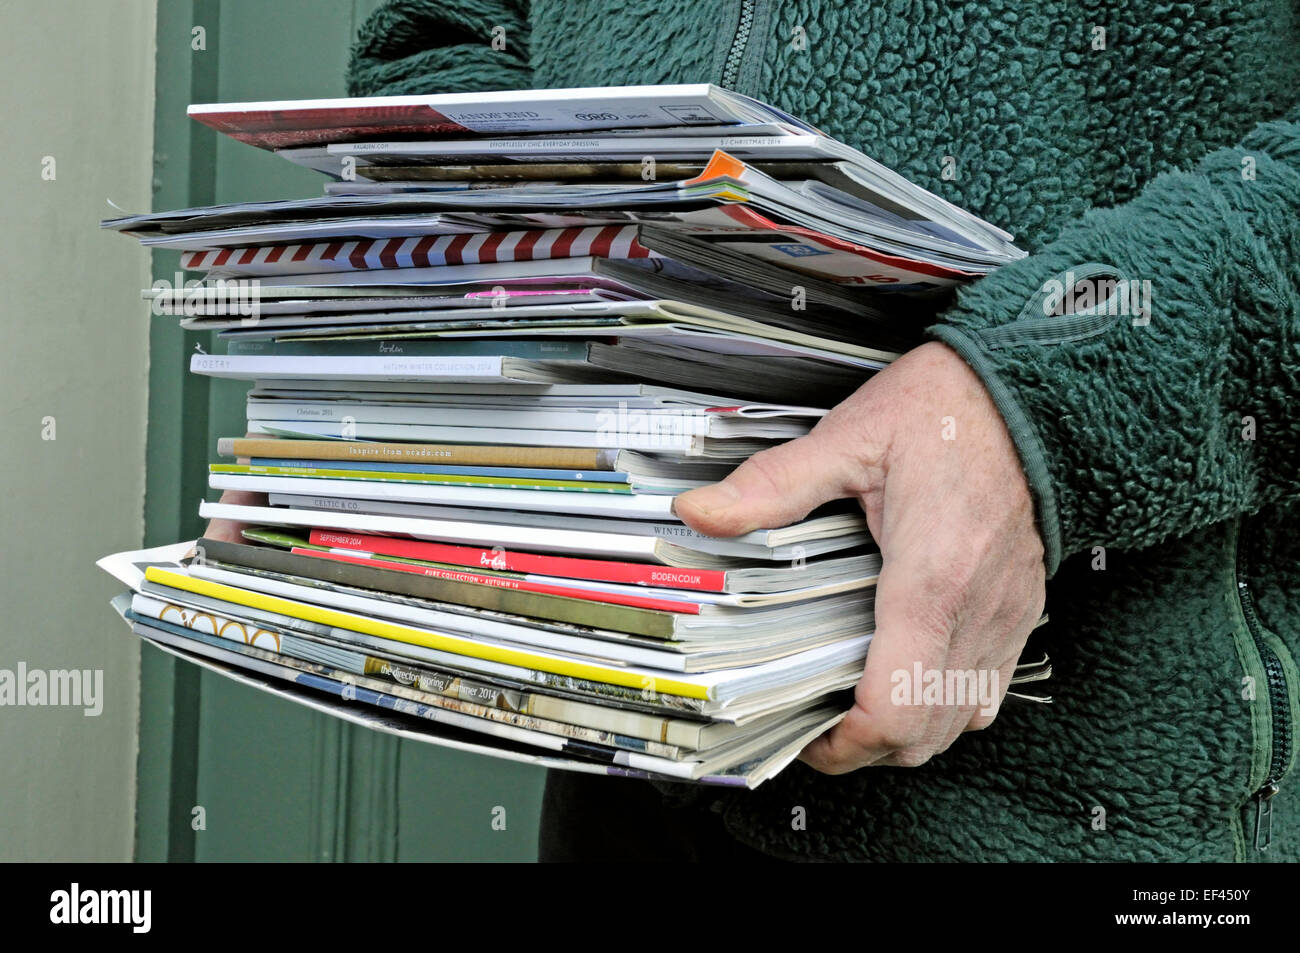 Man's hands holding pile of catalogues for recycling, Holloway, London Borough of Islington, England, UK - Stock Image